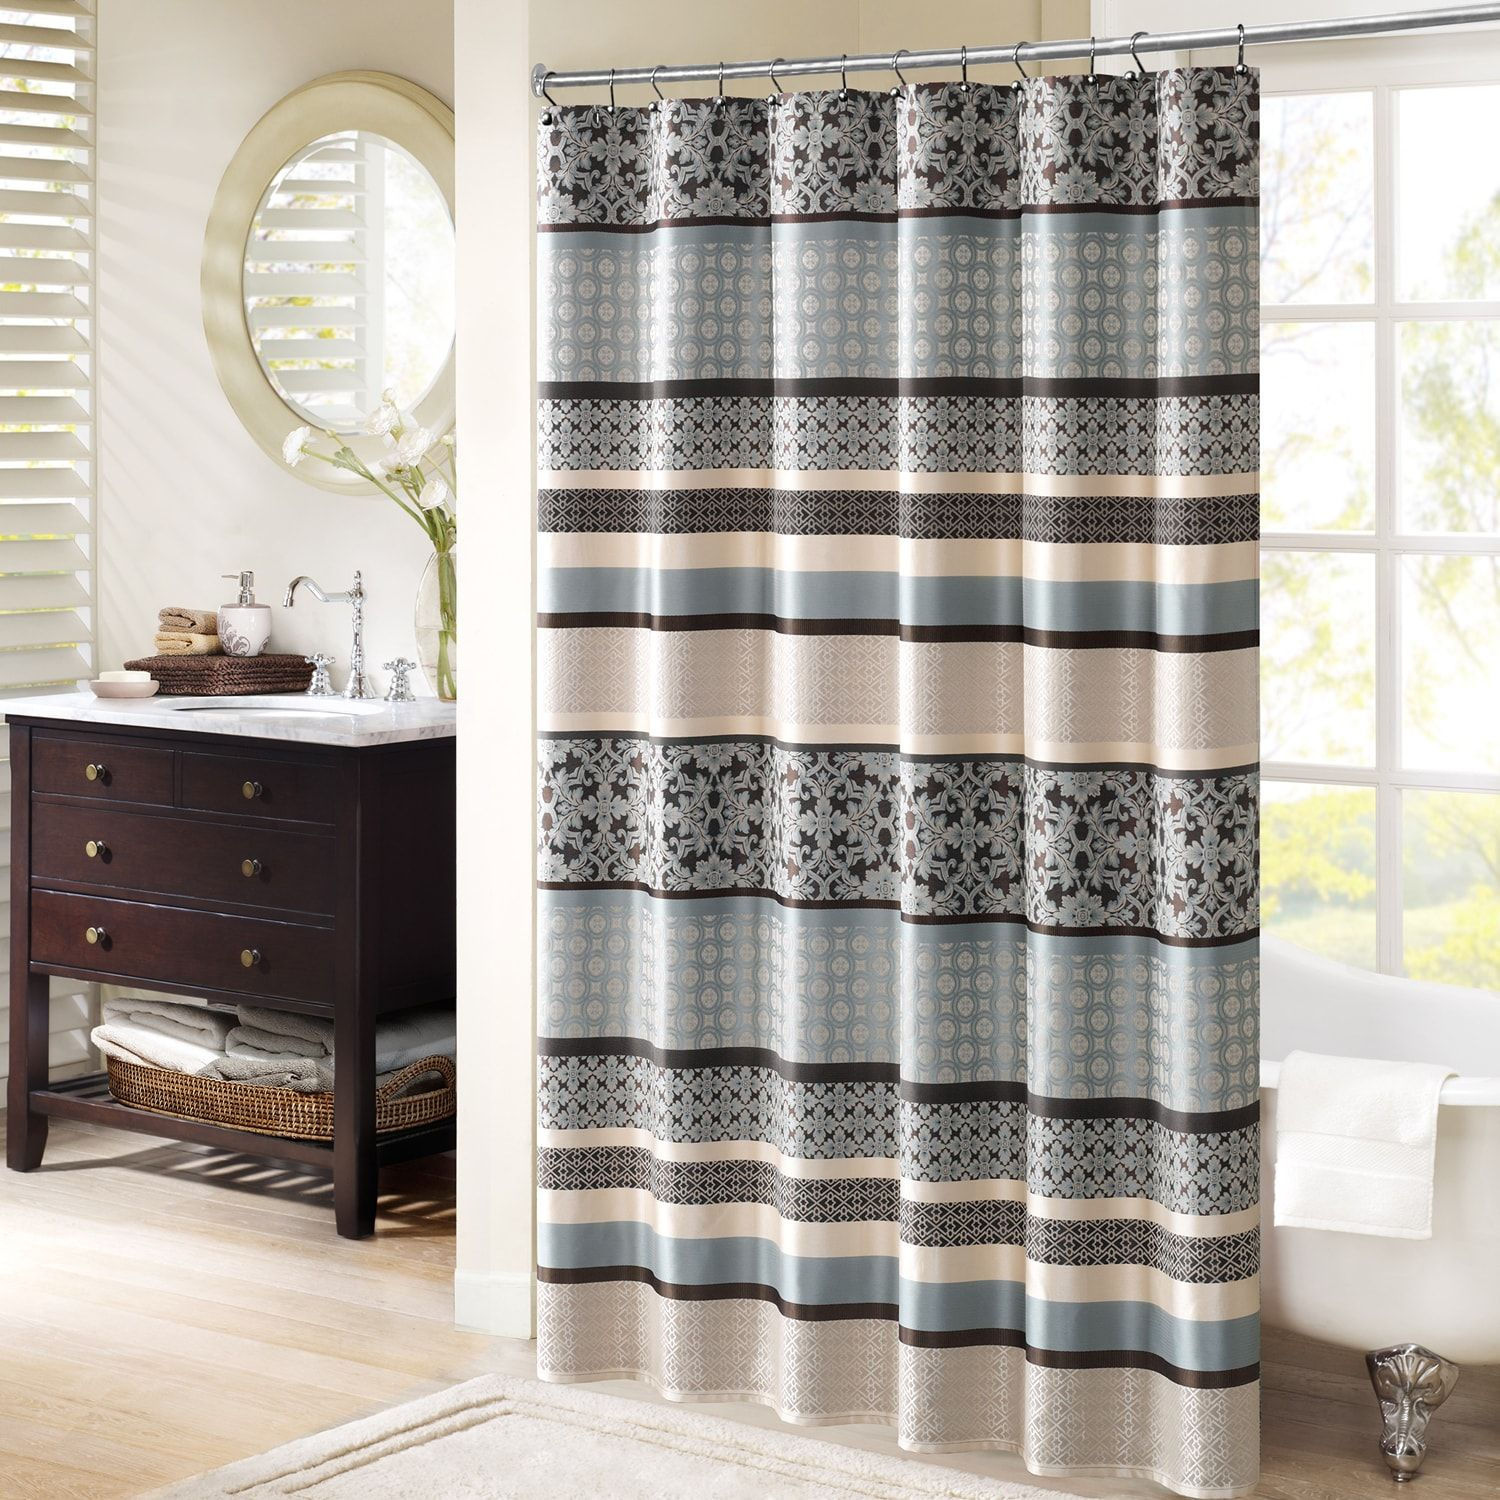 Shower with window ideas  madison park harvard jacquard shower curtain  home ideas